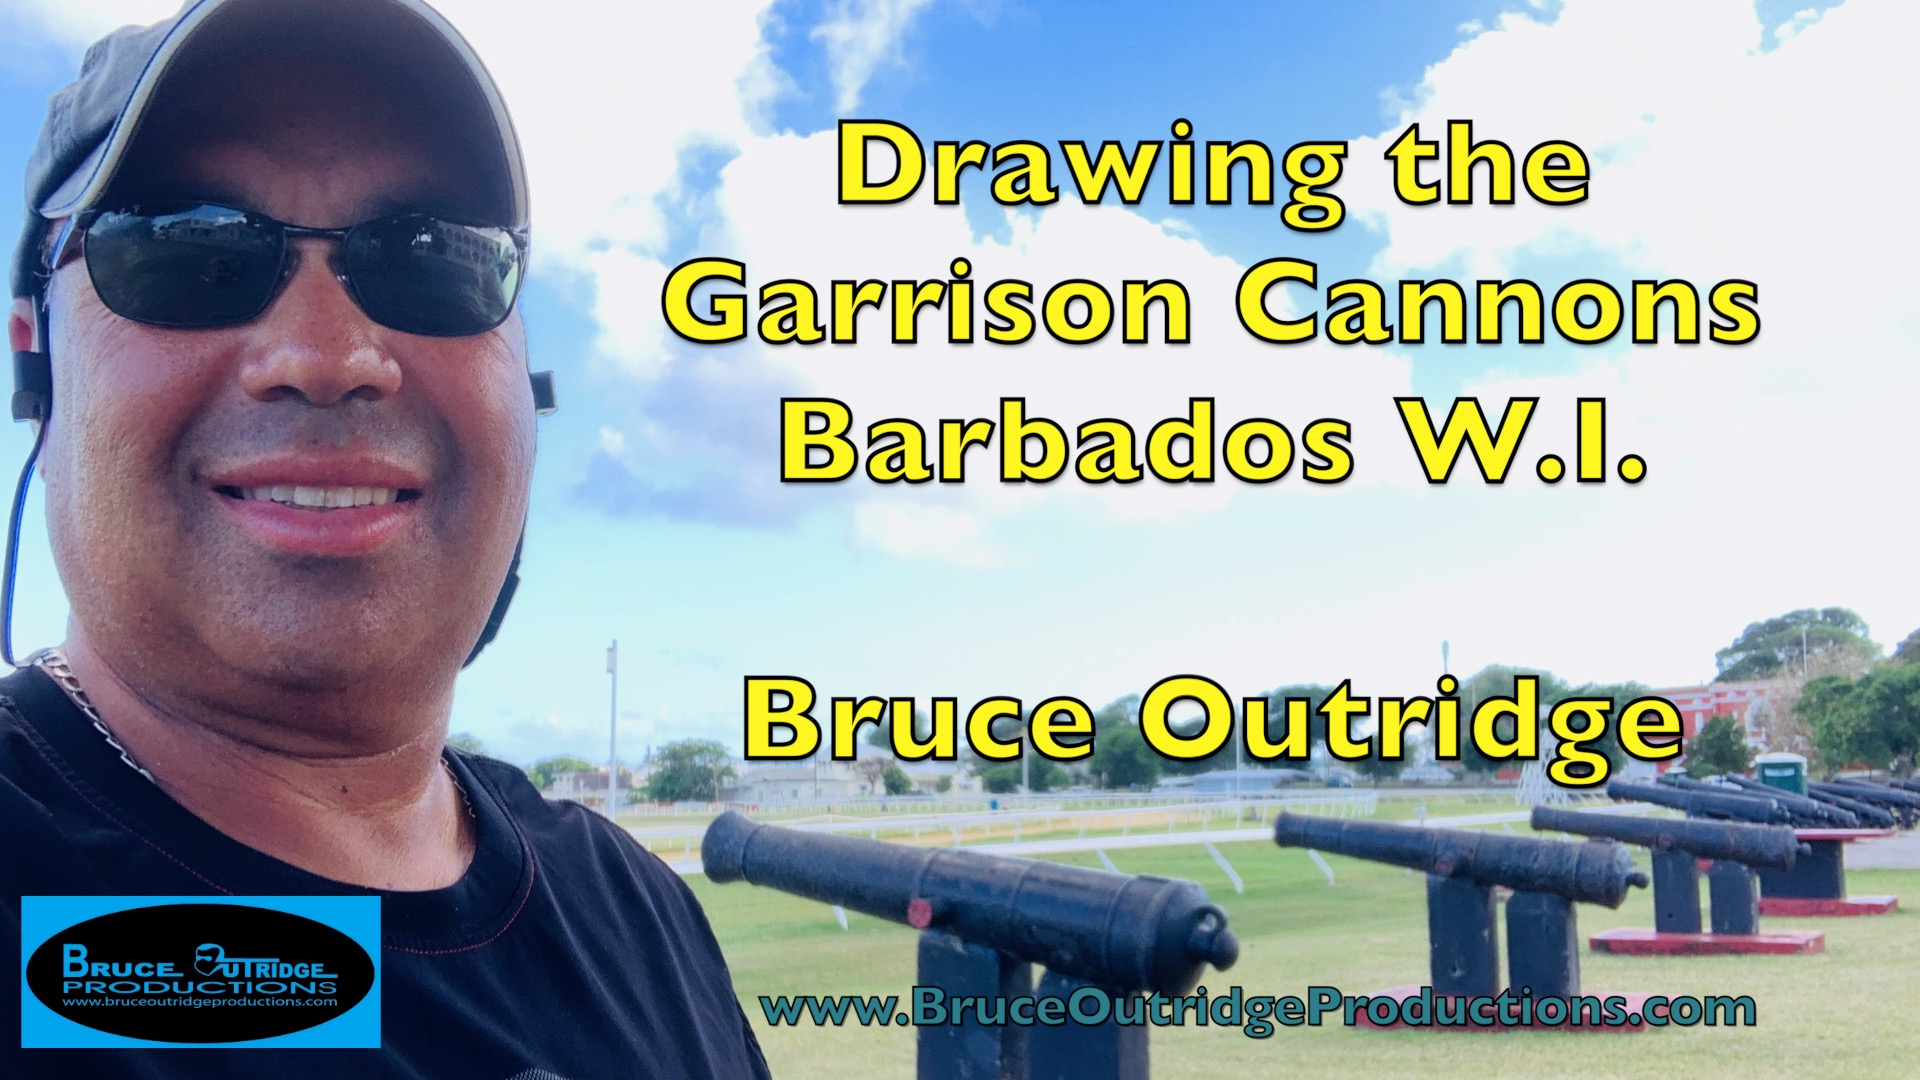 Bruce Outridge Draws Garrison Cannons in Barbados W.I.